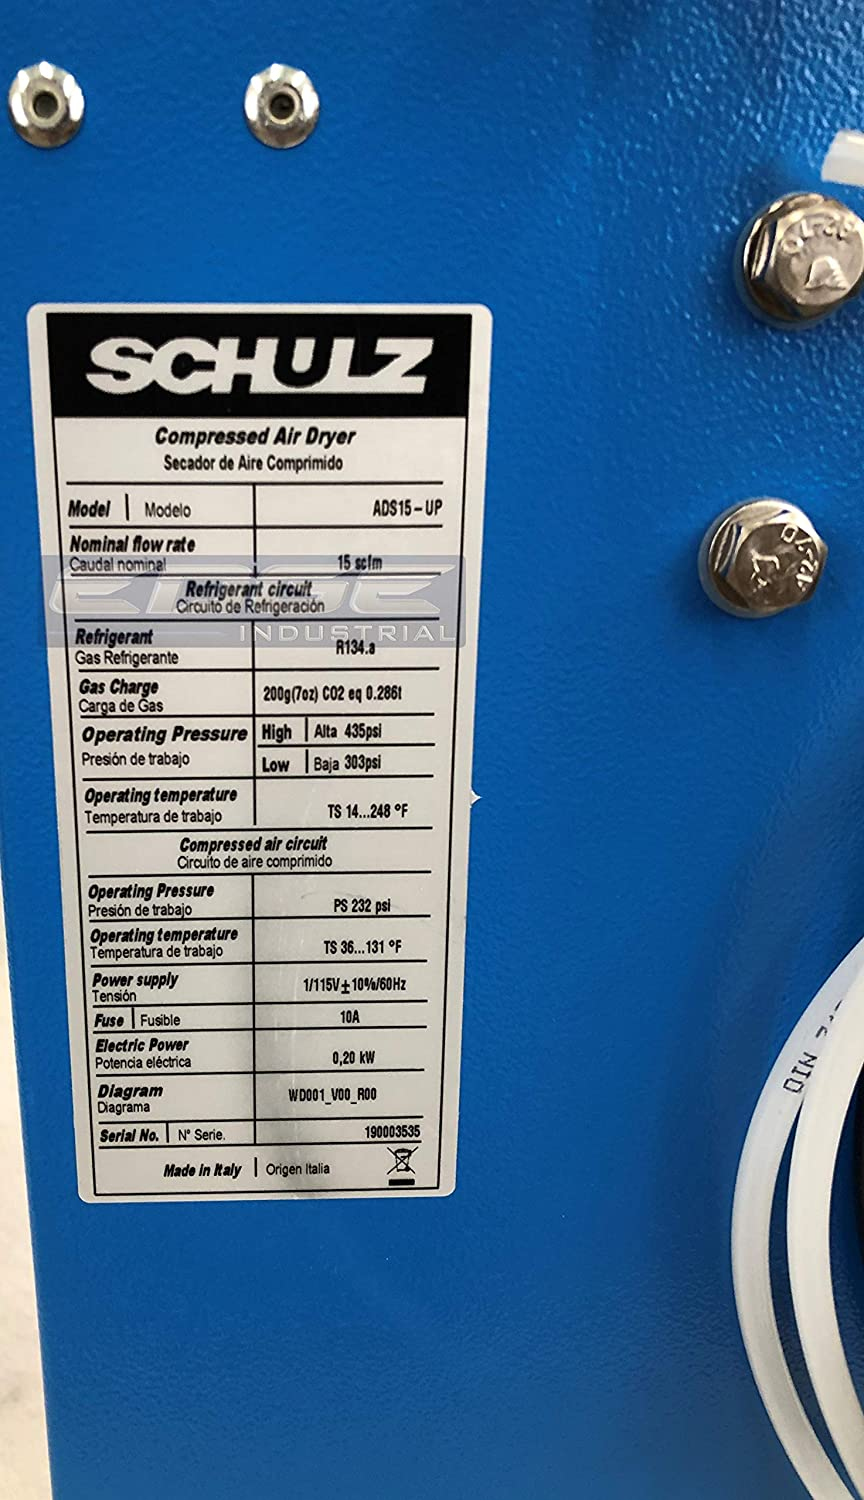 Compressed AIR Systems 15 CFM for 2 /& 3 HP COMPRESSORS with Regulator PRE-Filter Schulz REFRIGERATED AIR Dryer for AIR Compressor